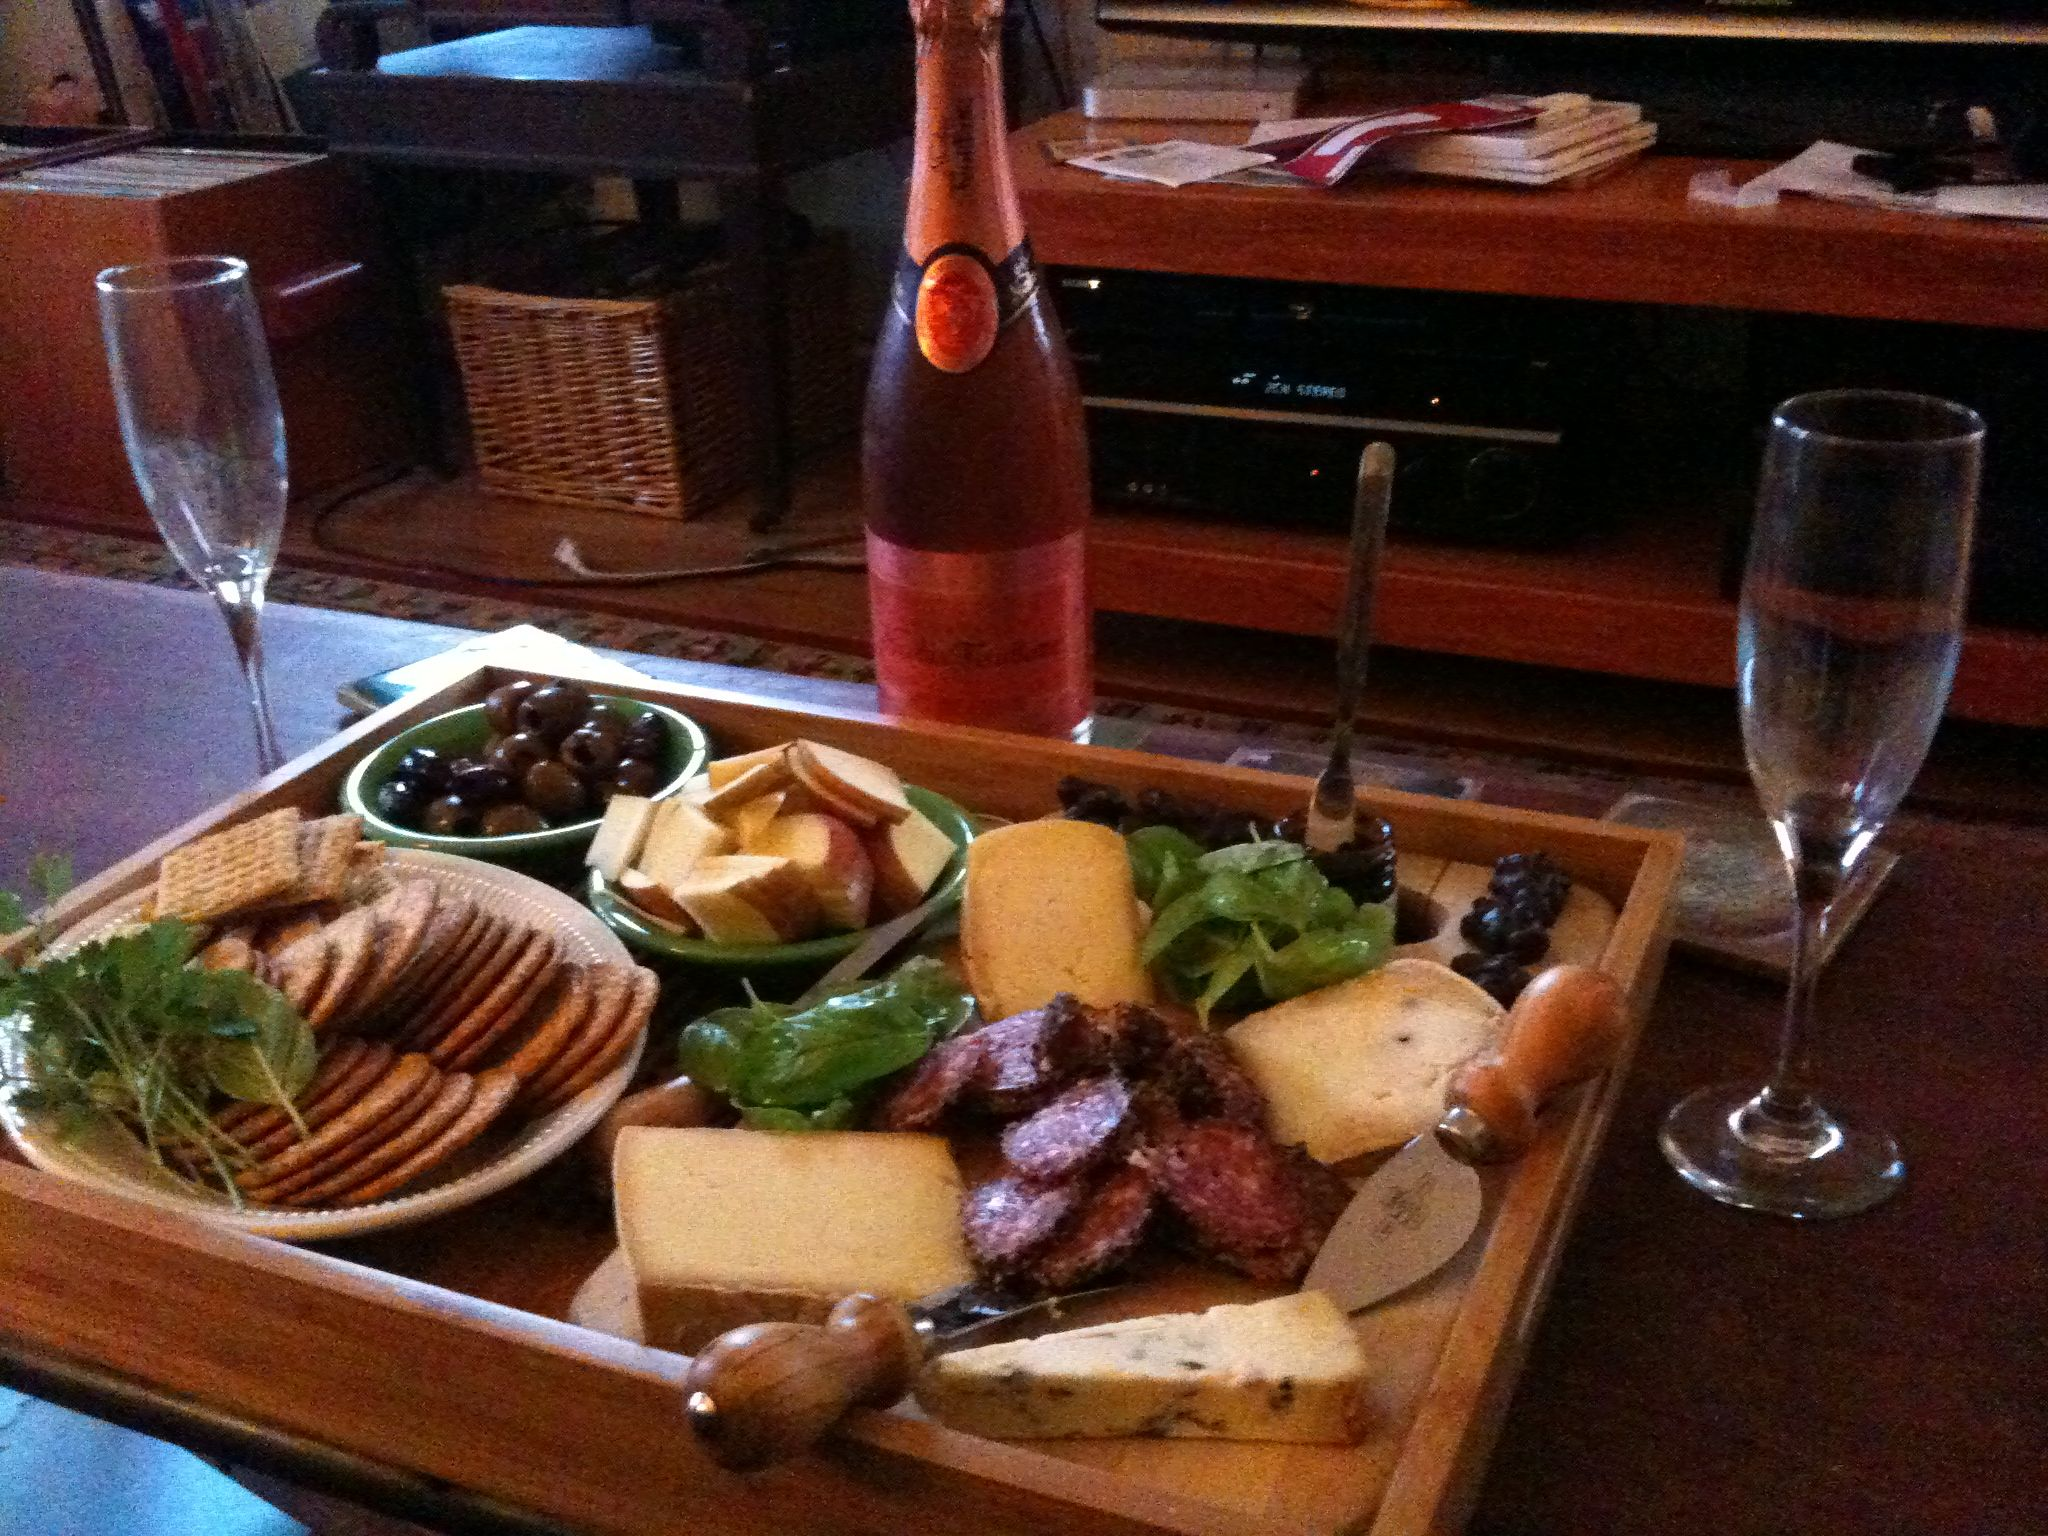 Indoor Picknick indoor picnic cheese bubbly yum yums